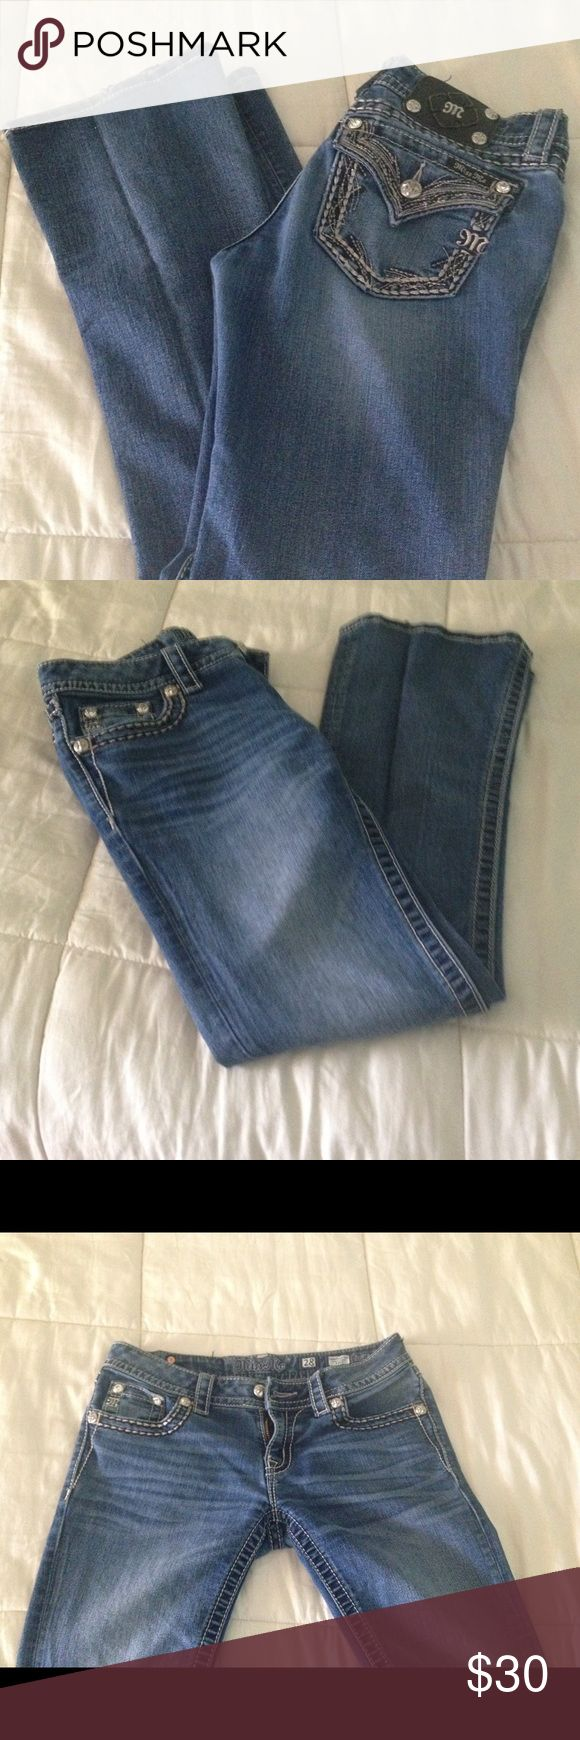 Miss me brand jeans. Boot cut size 28. Purchased these on posh and are to small. They are a lighter denim and in great condition. Missing a rivet on the miss me badge on back. Miss Me Jeans Boot Cut